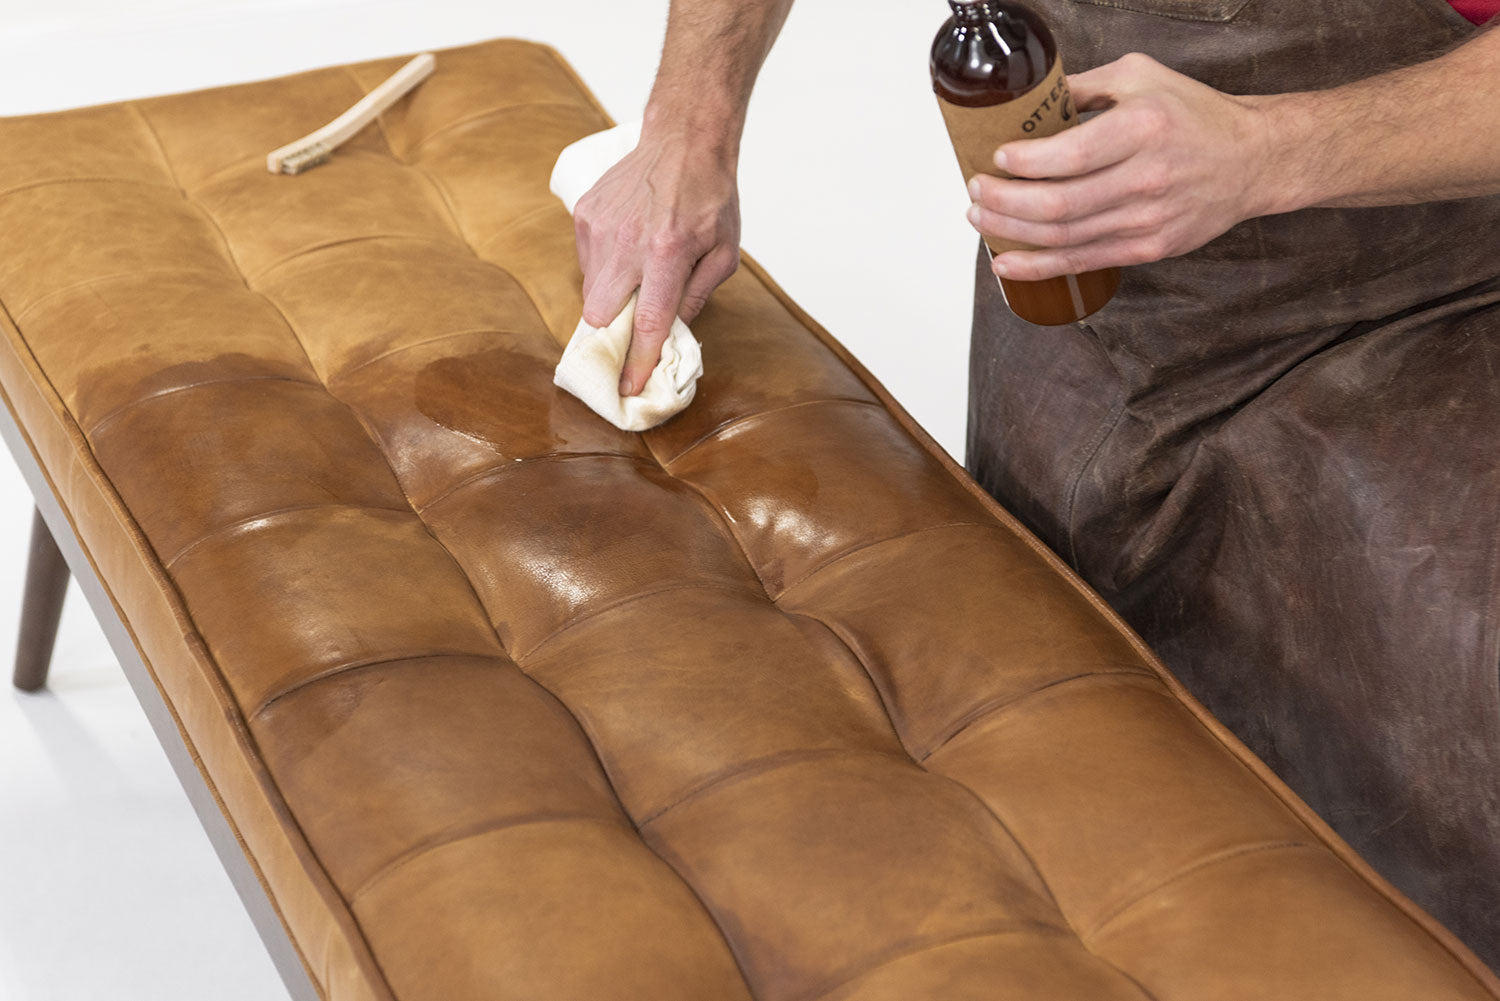 How To Care For Full-Grain Aniline or Semi-Aniline Leather Furniture With Otter Wax Leather Oil